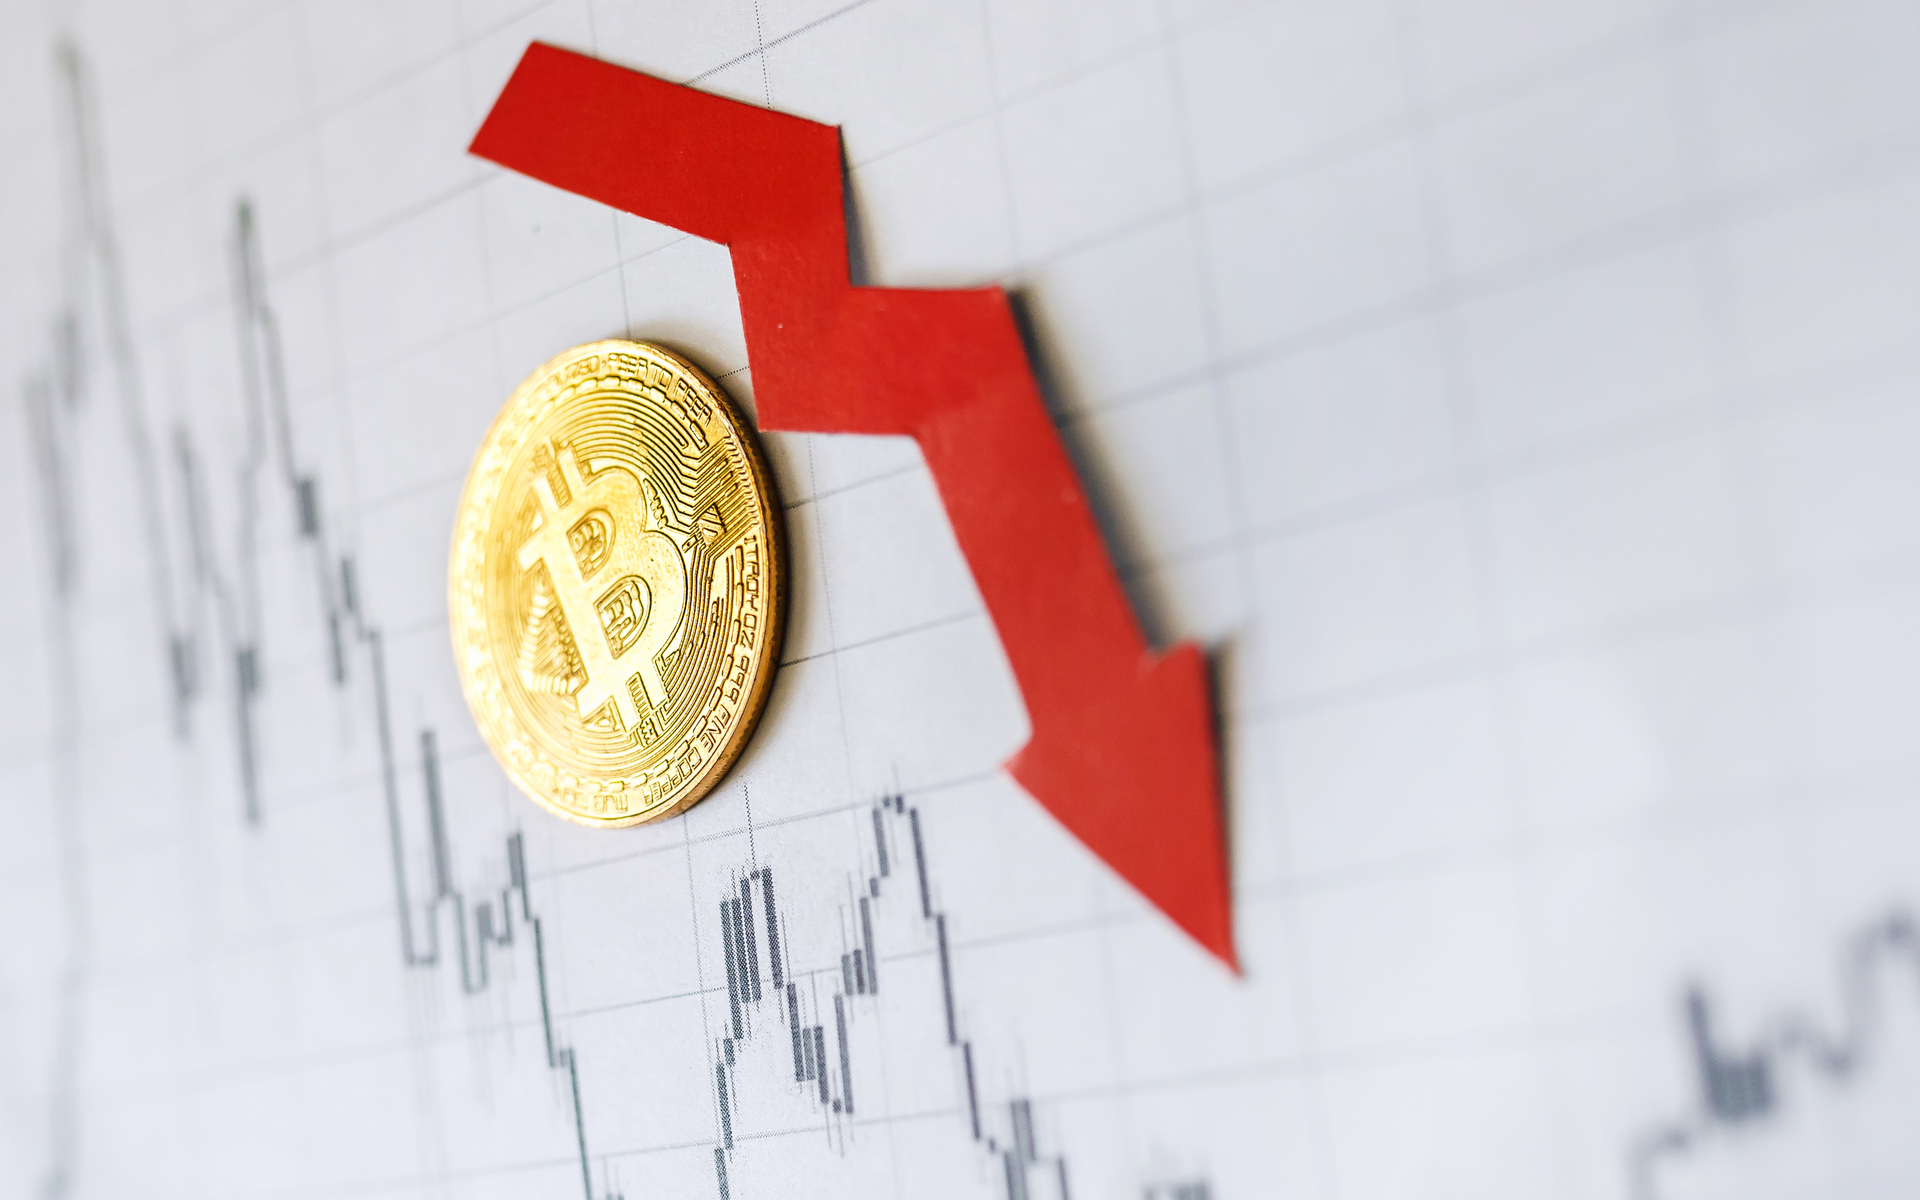 bitcoin price chart down